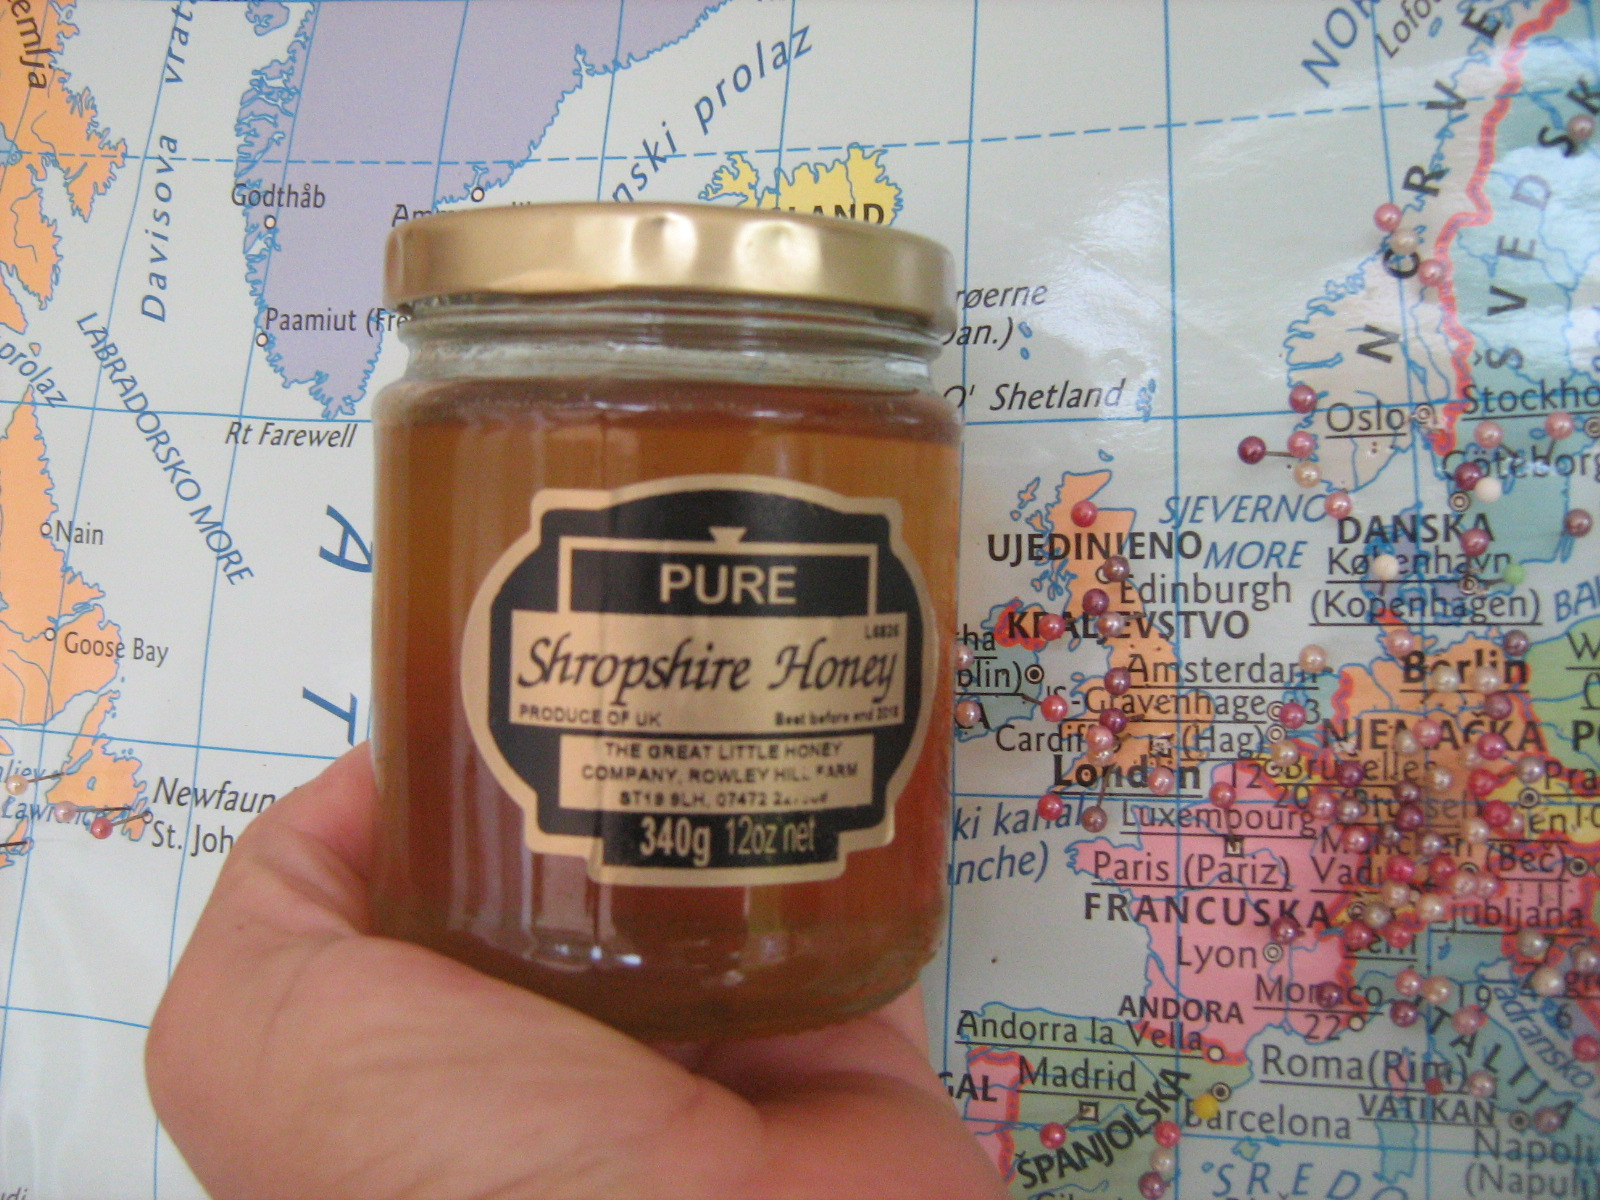 The Langerons Shropshire honey